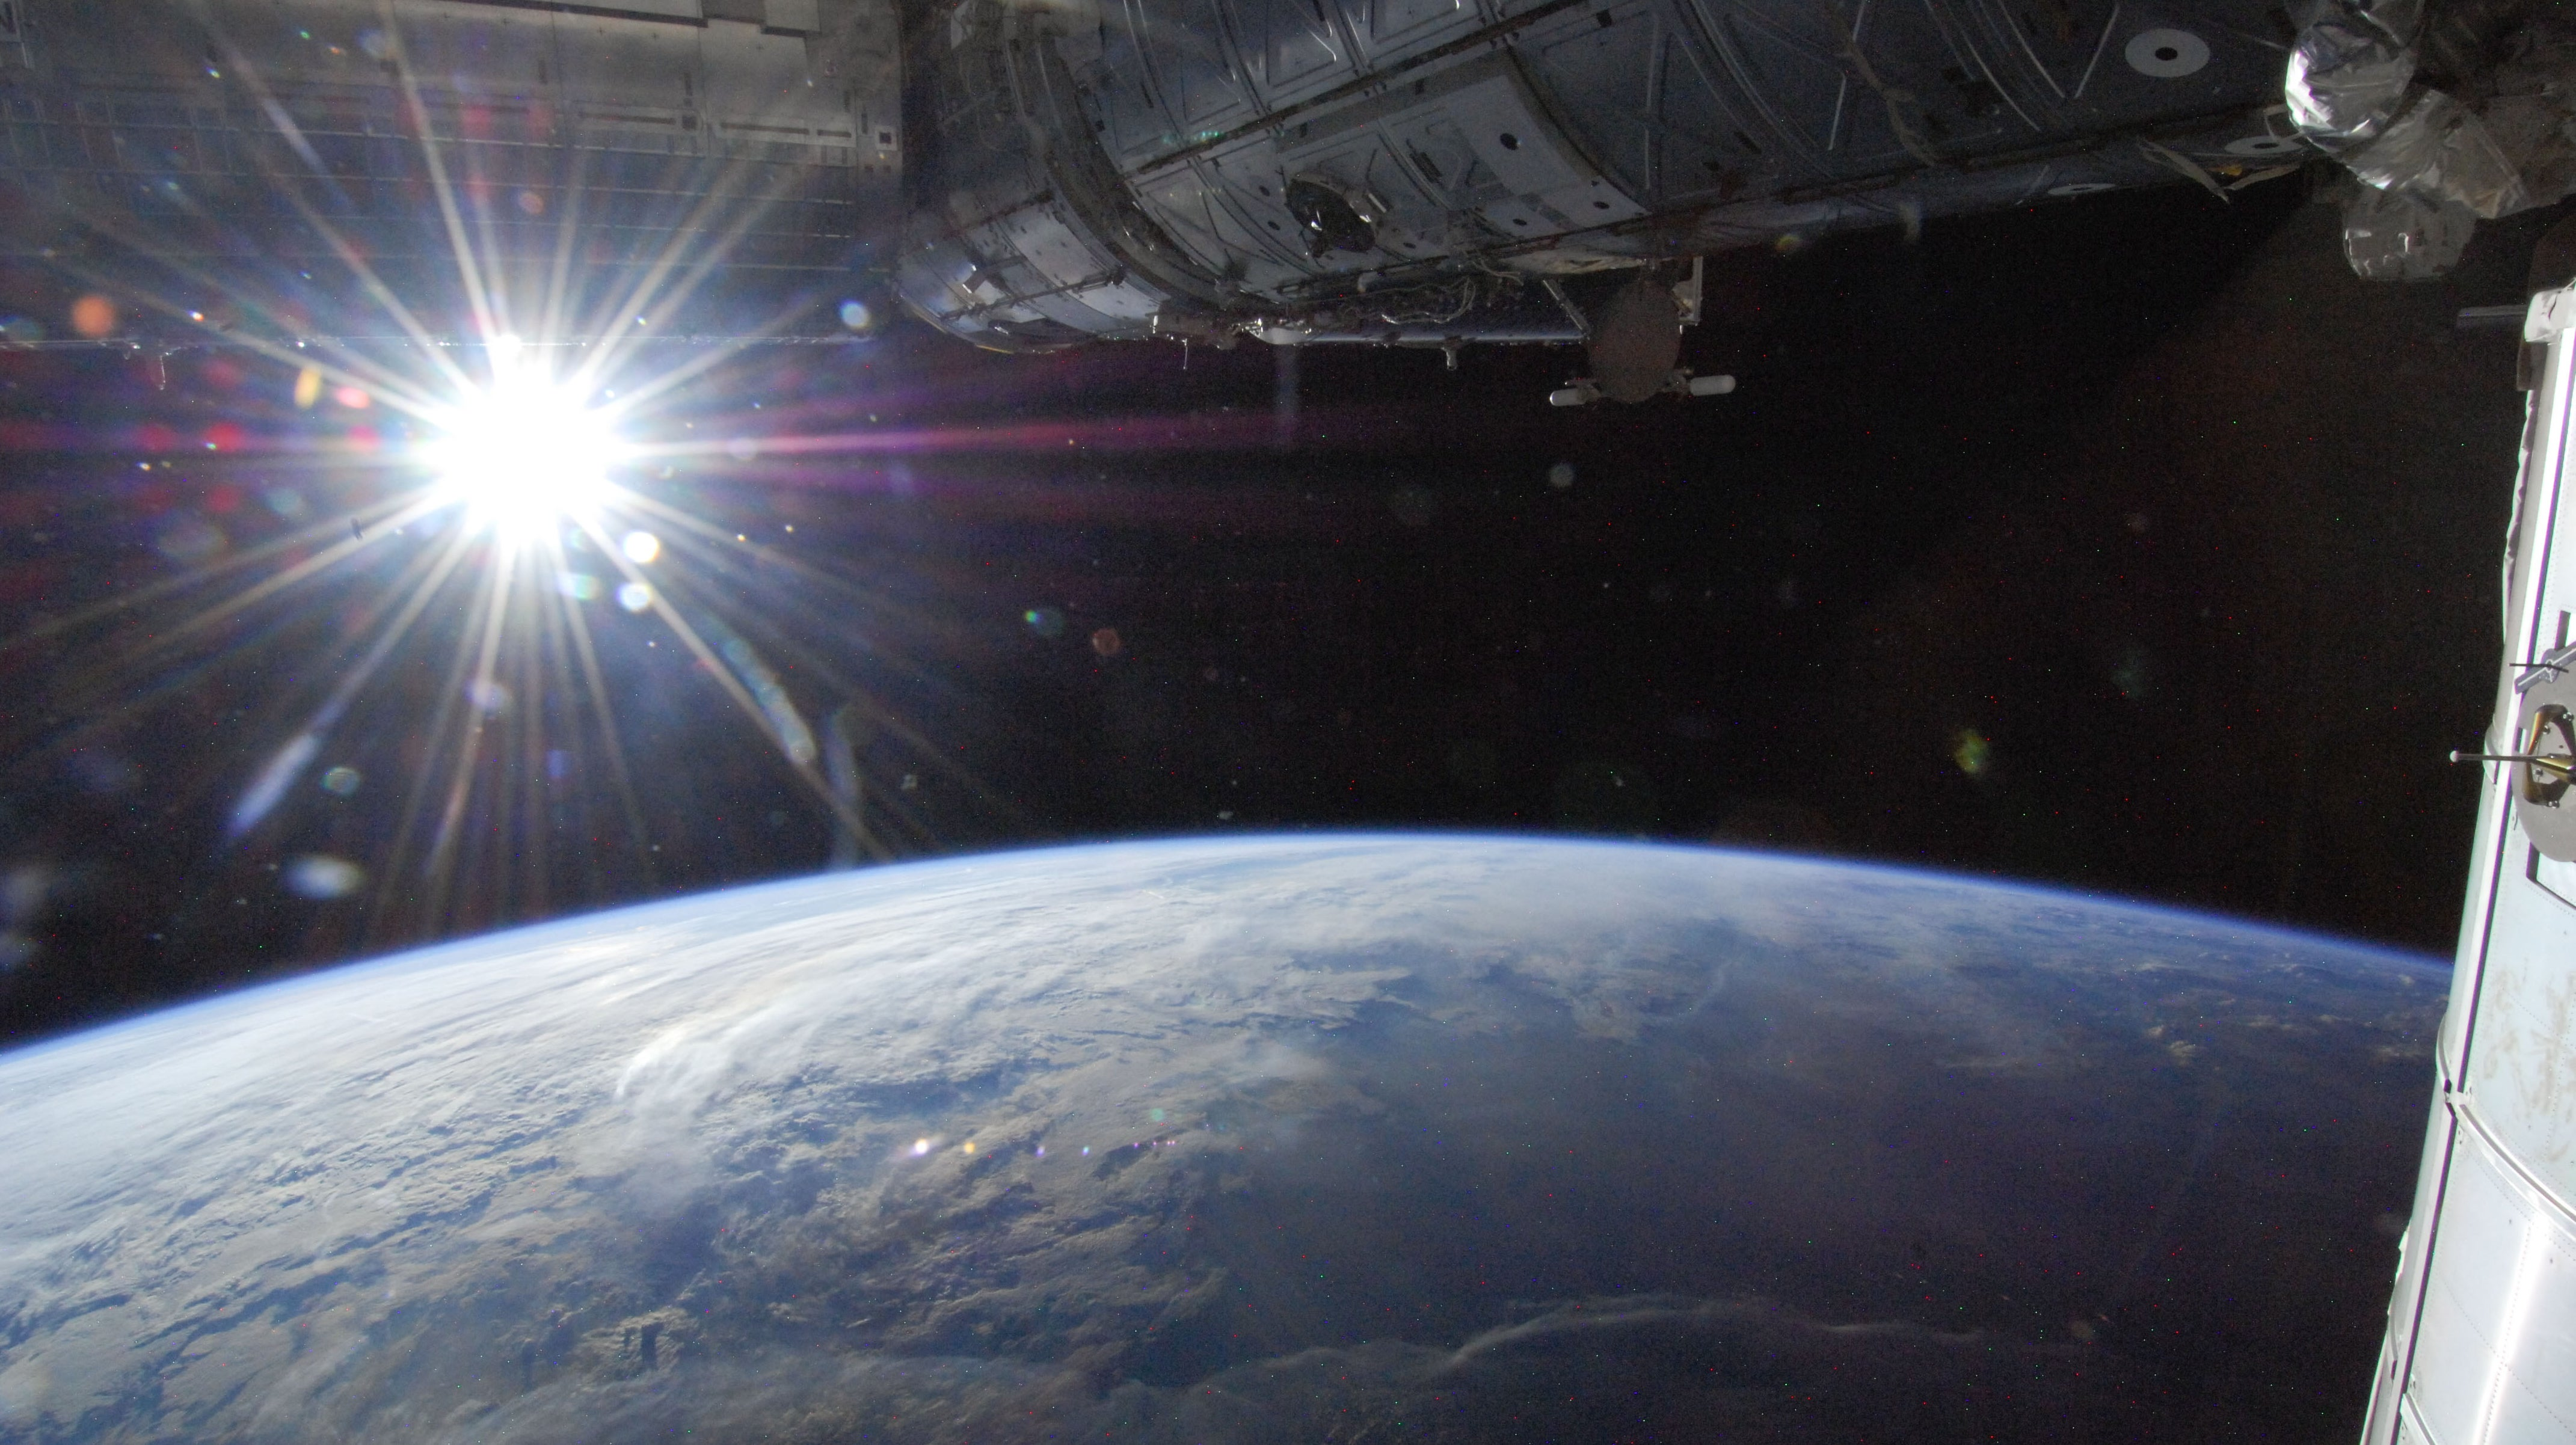 The Earth Is Farthest From The Sun Today, So Why Is It So Hot?